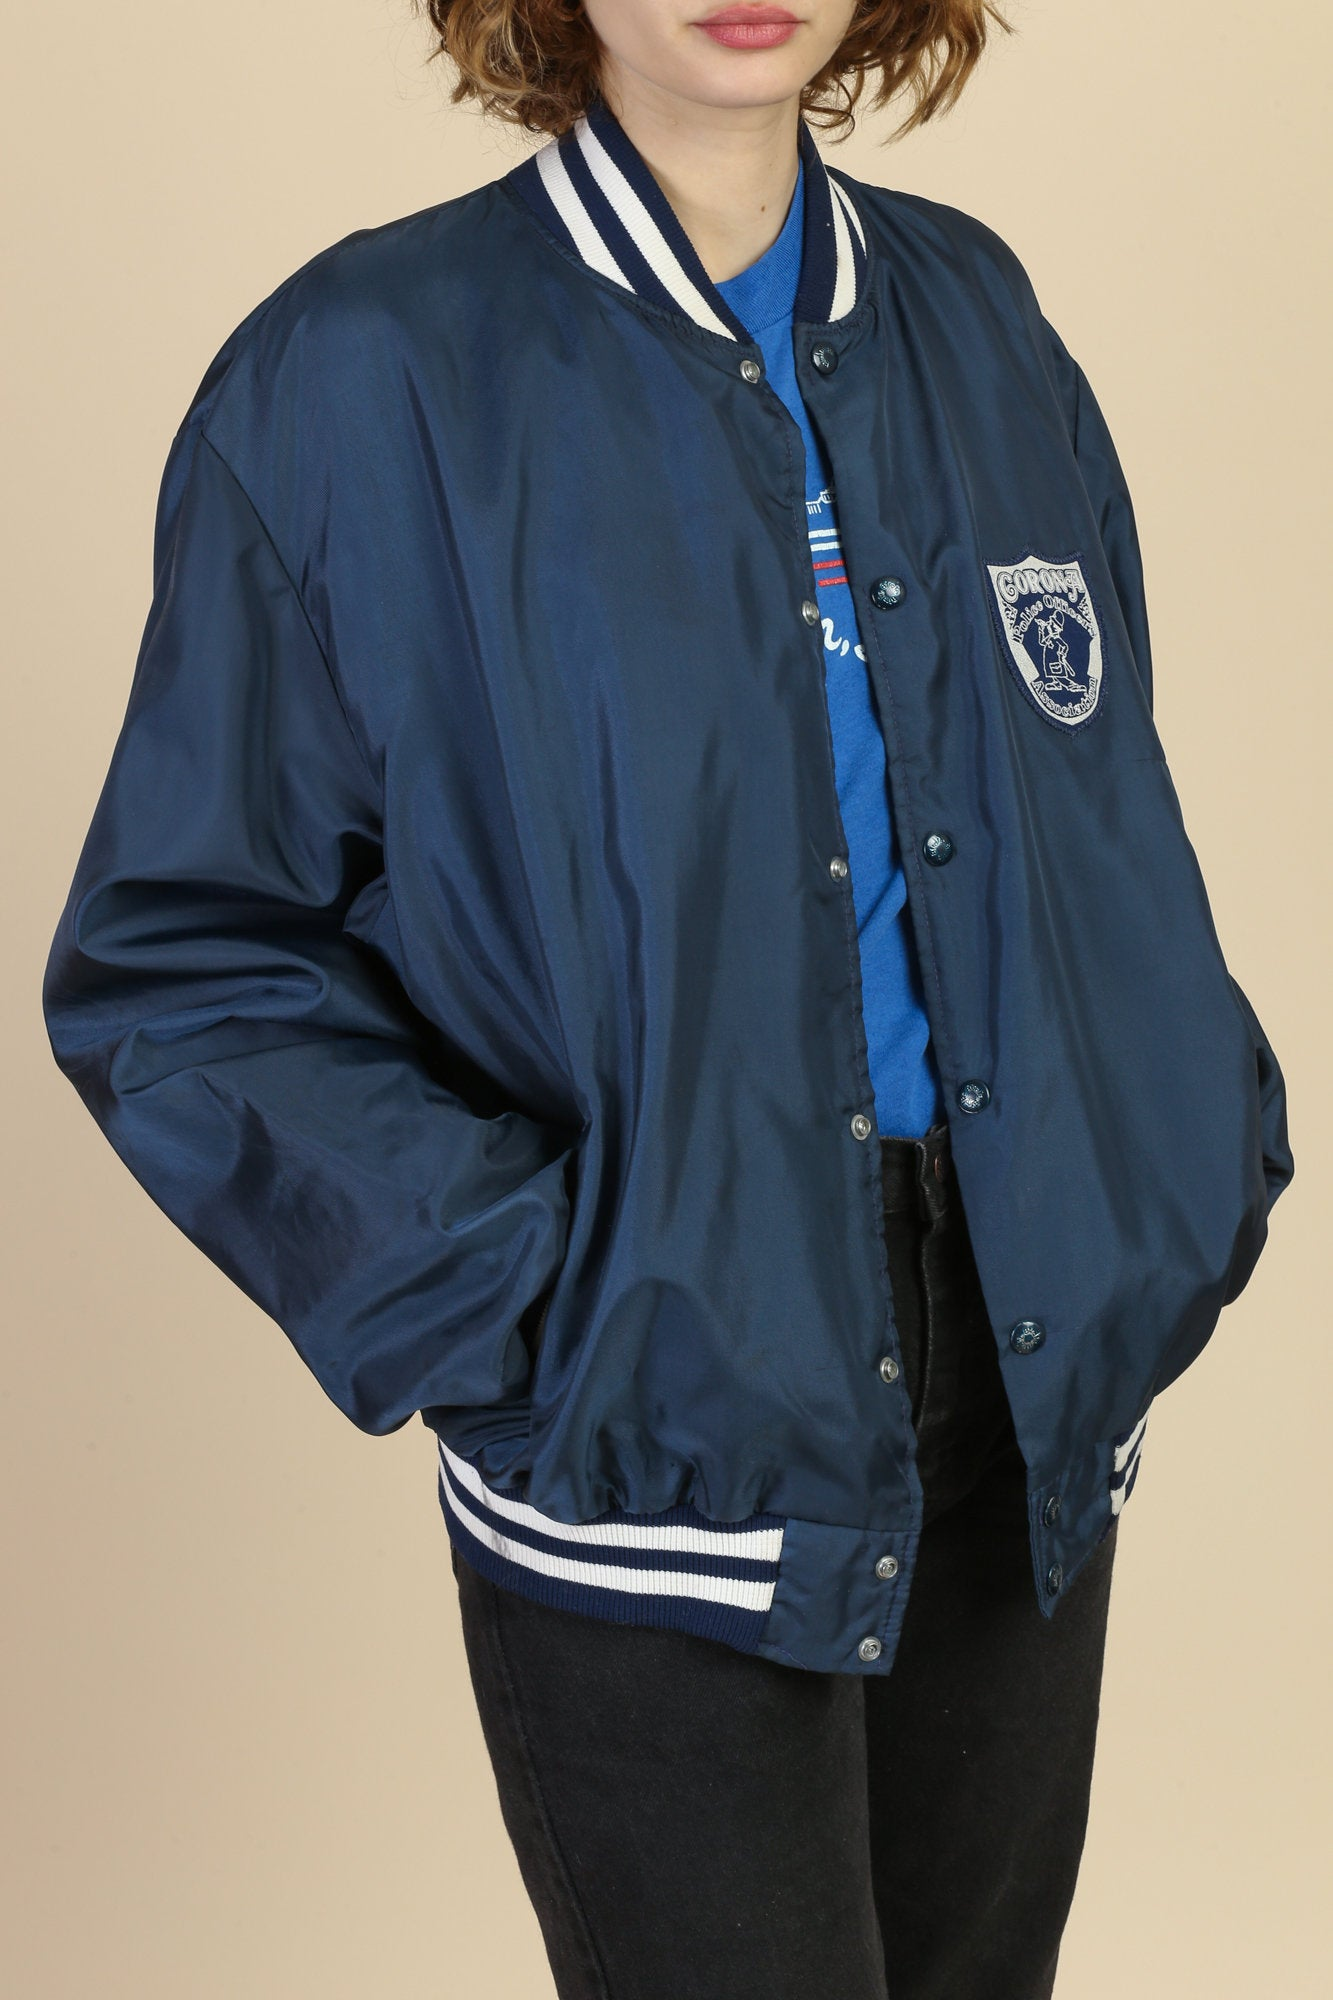 80s Corona Police Officers Varsity Windbreaker Jacket - Men's XL